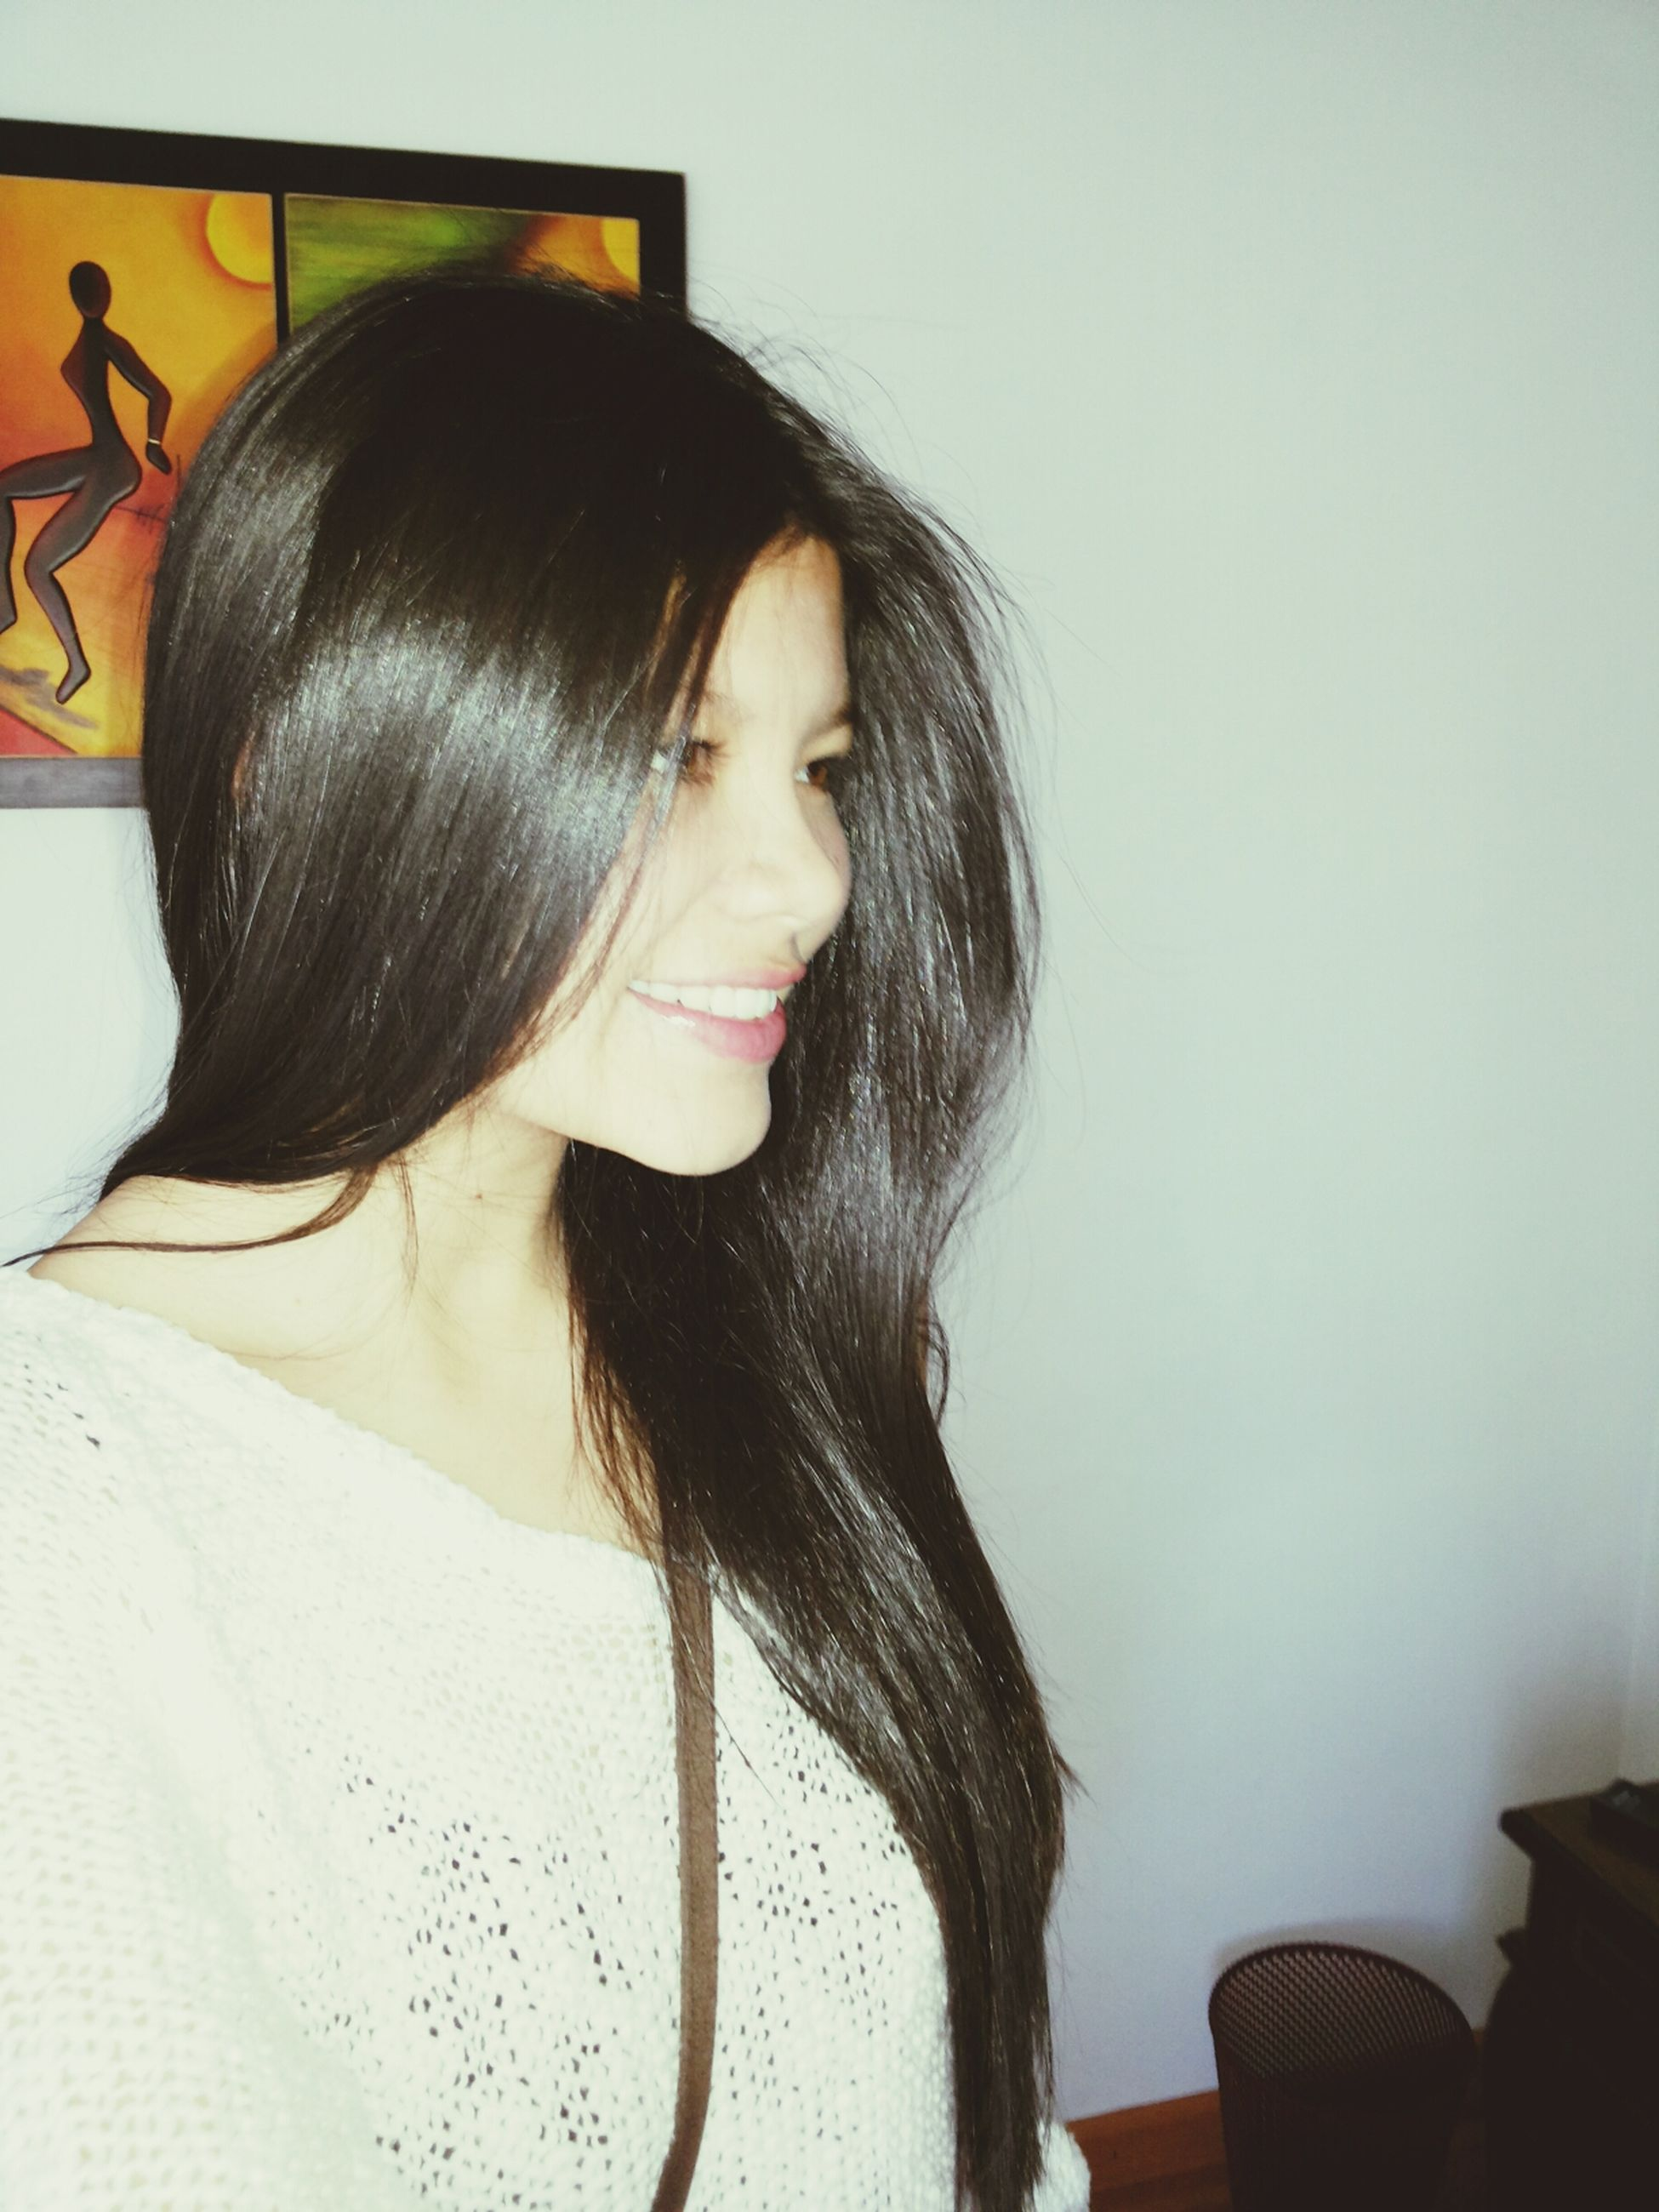 long hair, young women, young adult, lifestyles, person, indoors, headshot, black hair, leisure activity, front view, casual clothing, looking at camera, portrait, waist up, brown hair, medium-length hair, wall - building feature